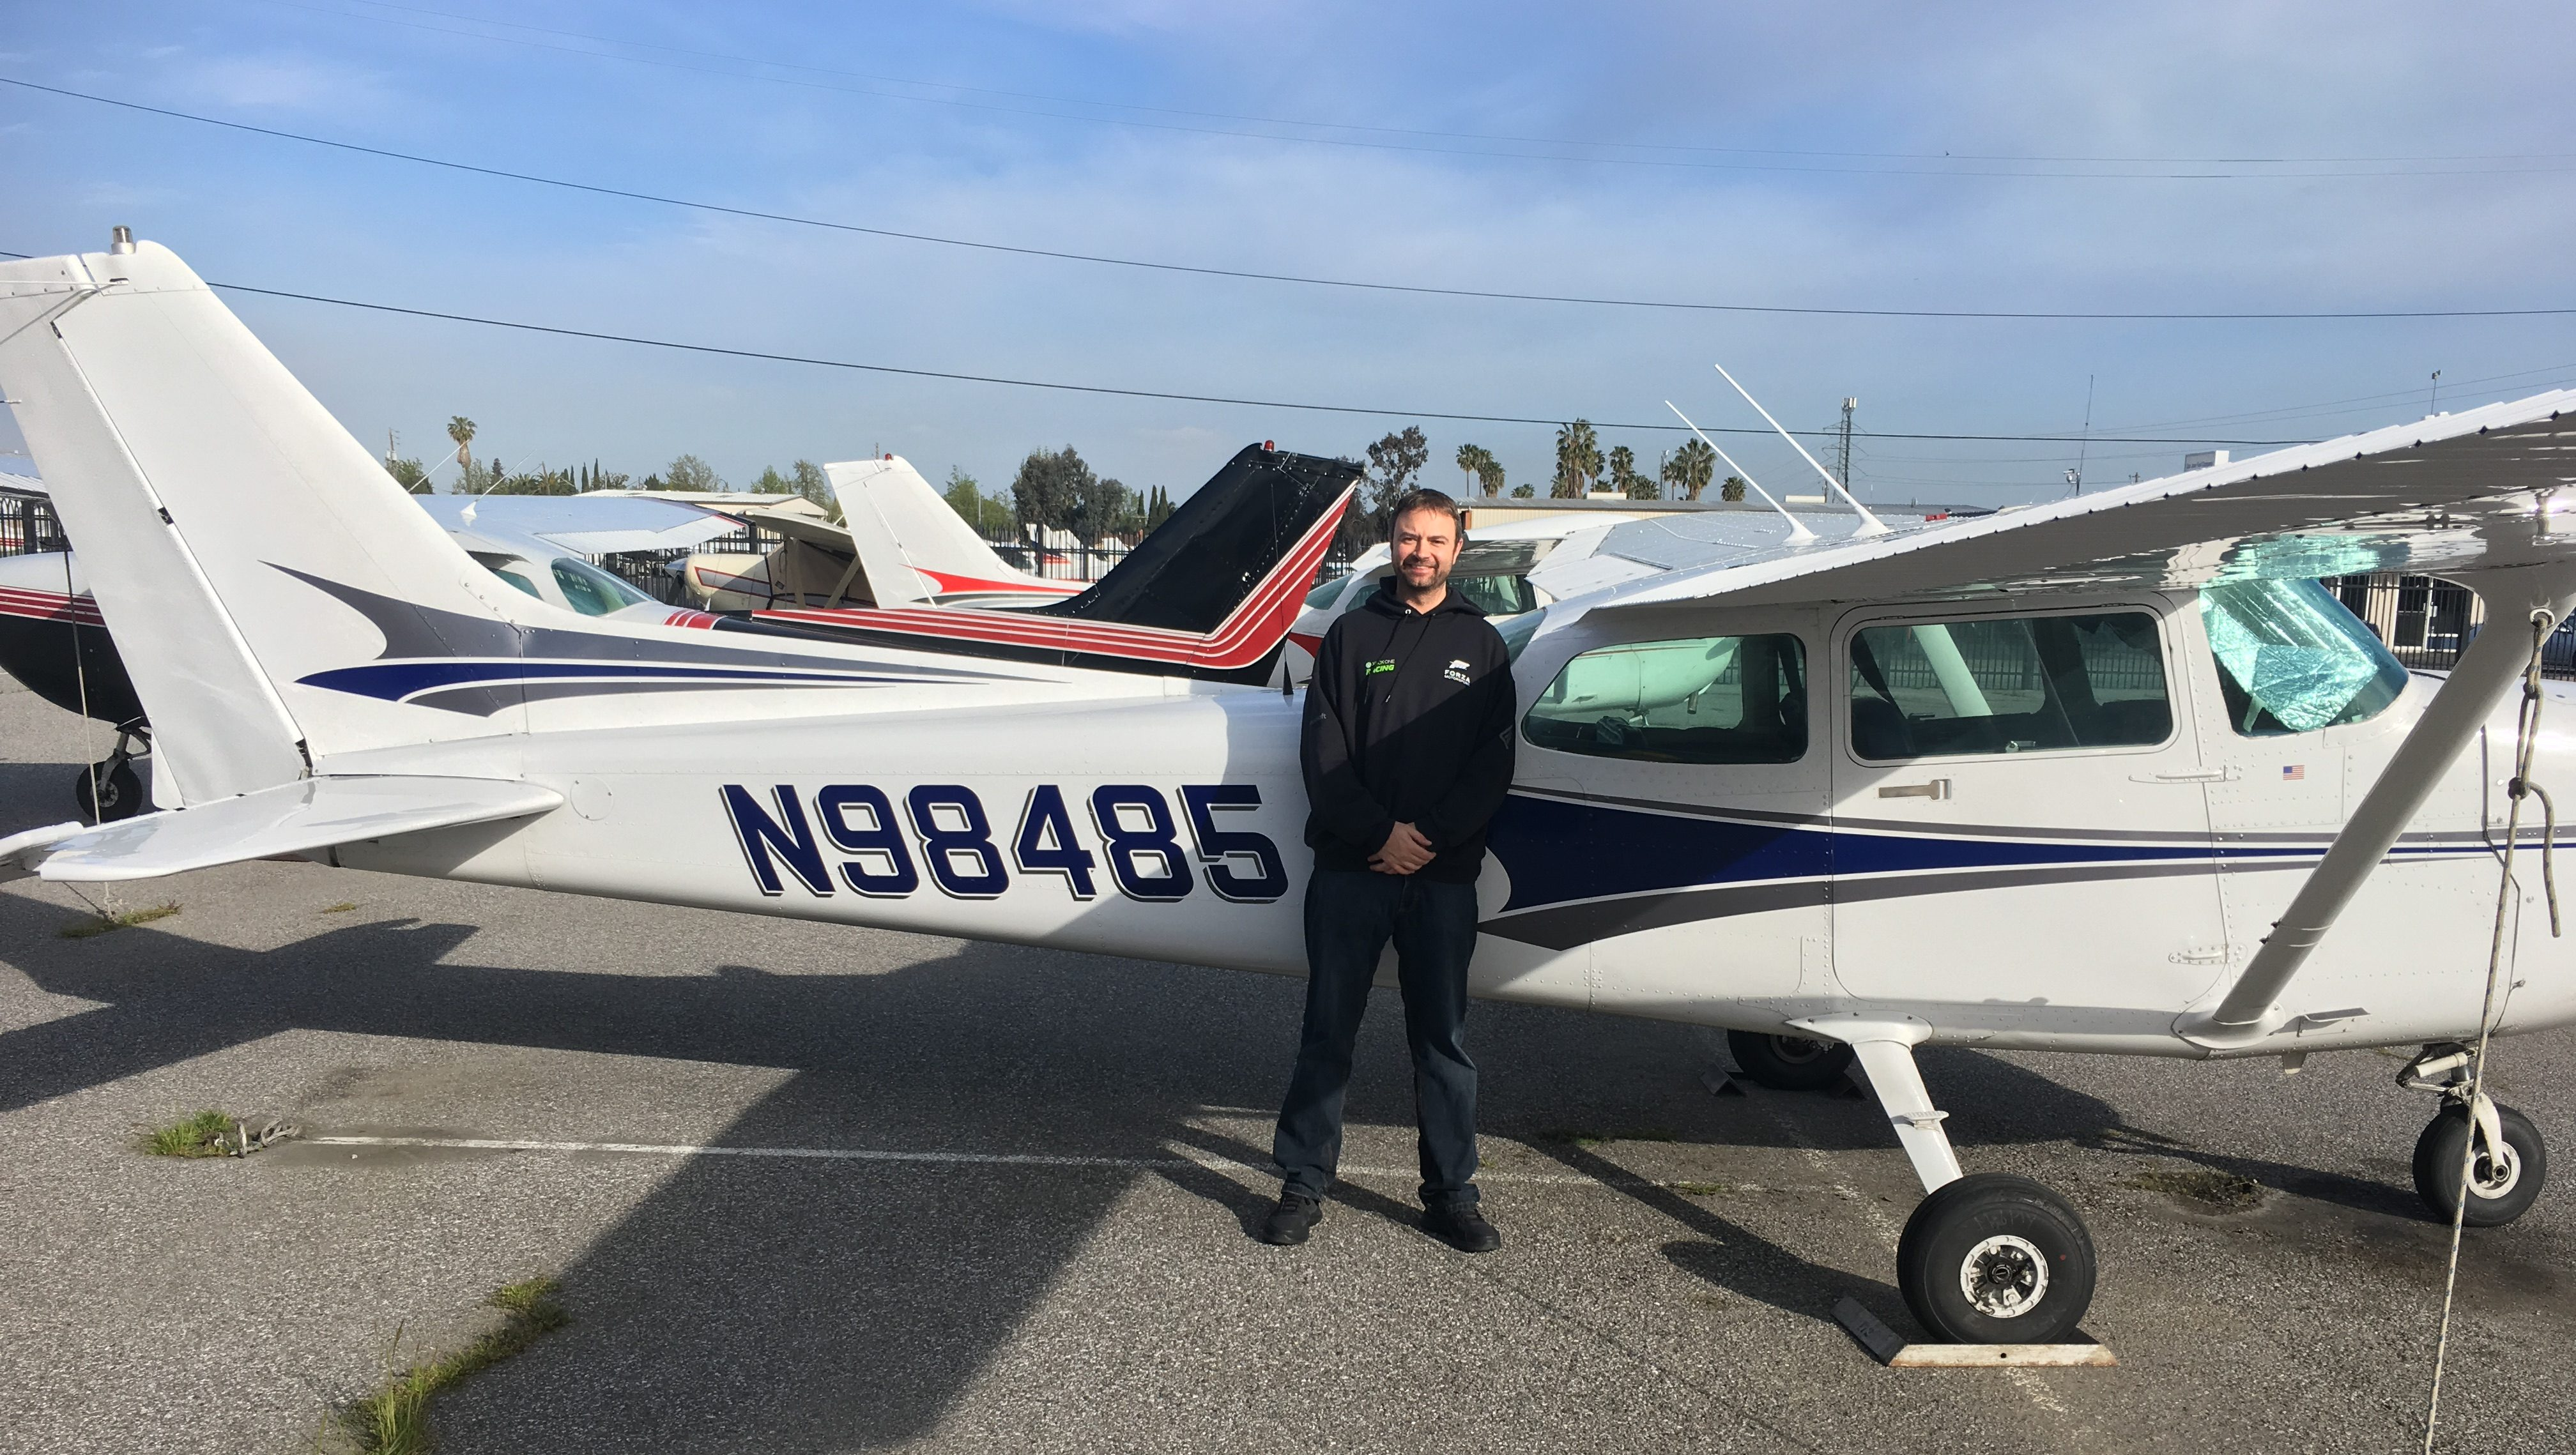 solo, flight training, N98485